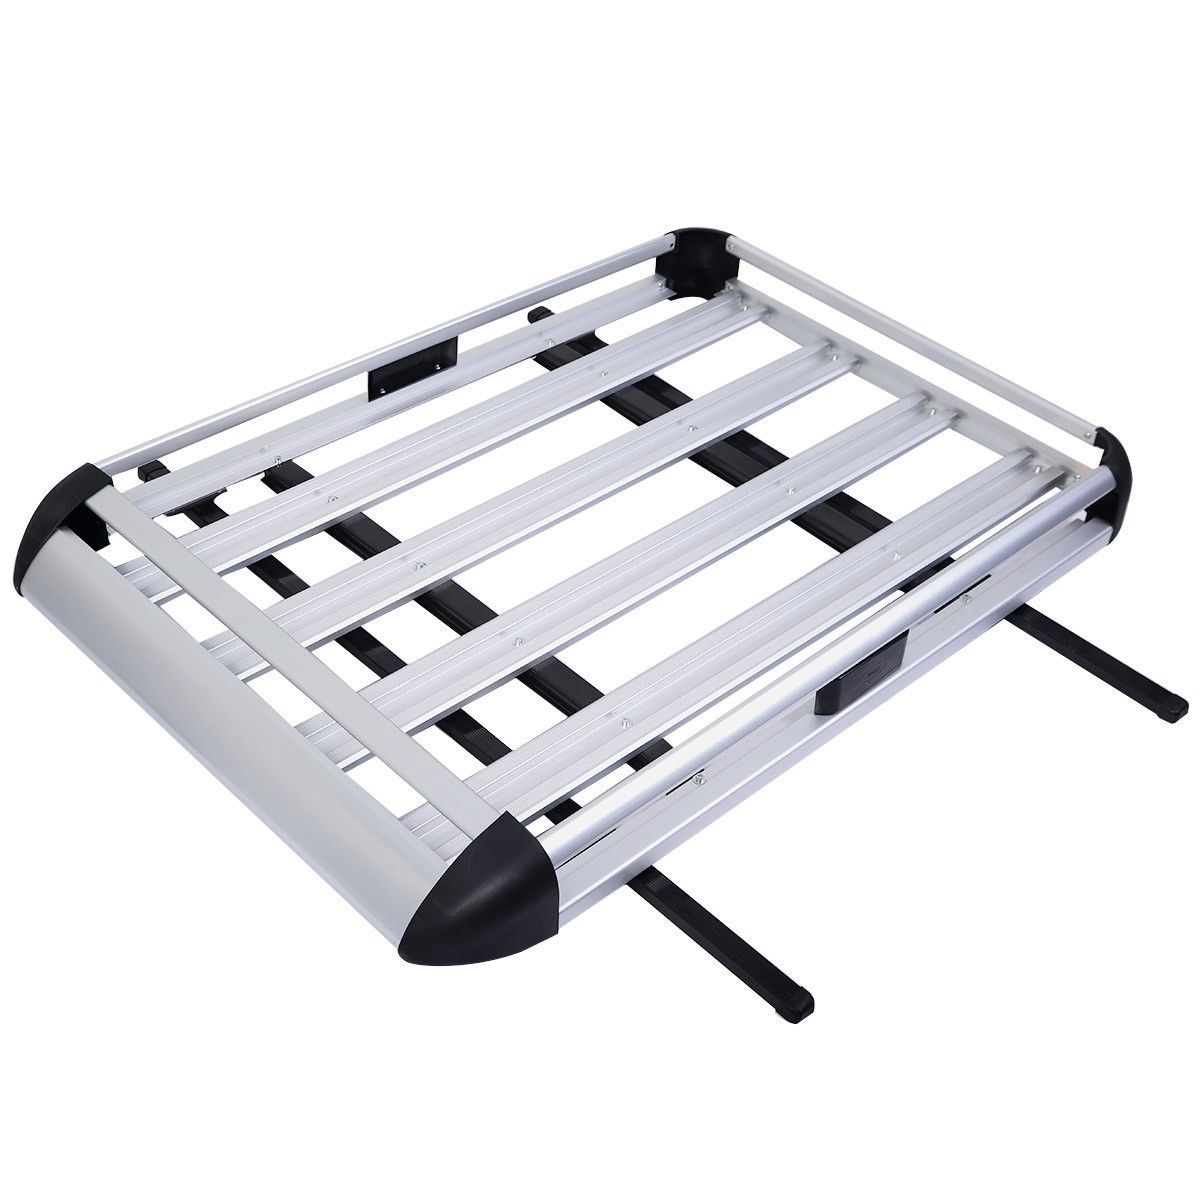 Aluminum Car Roof Cargo Carrier with Crossbars Car roof